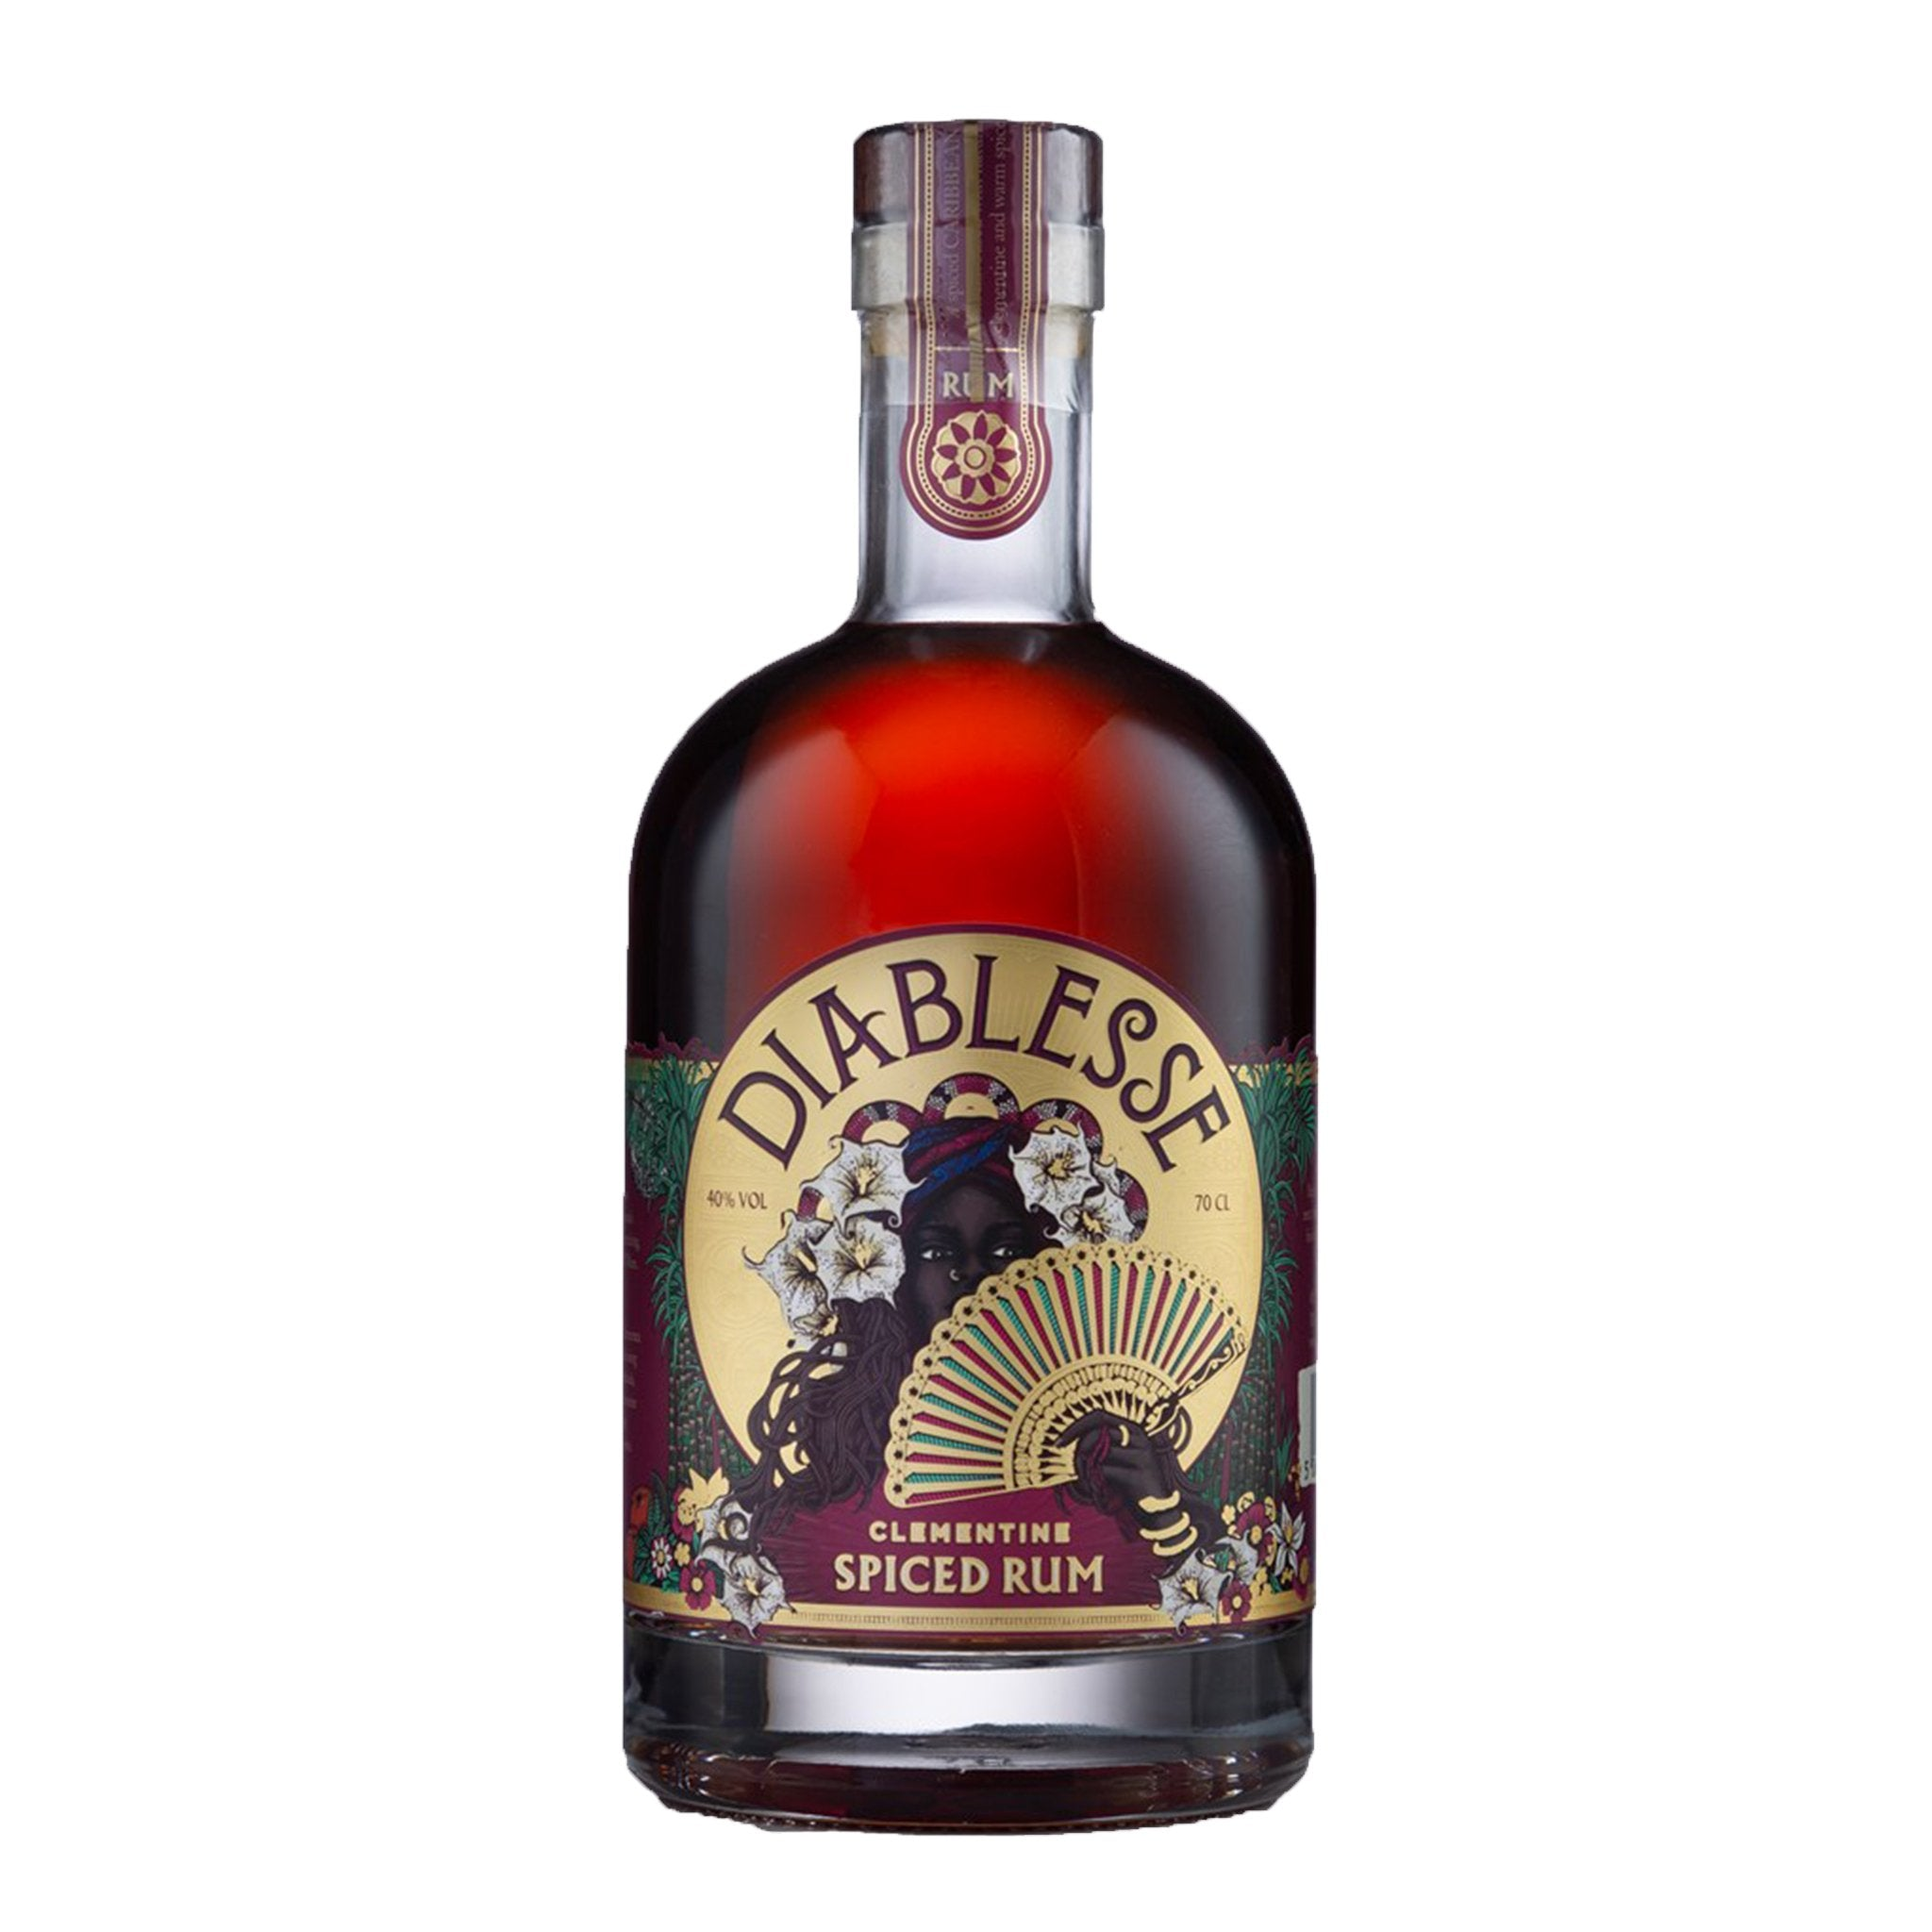 Diablesse Clementine Spiced Rum 70cl, Rum by Drinks Shop